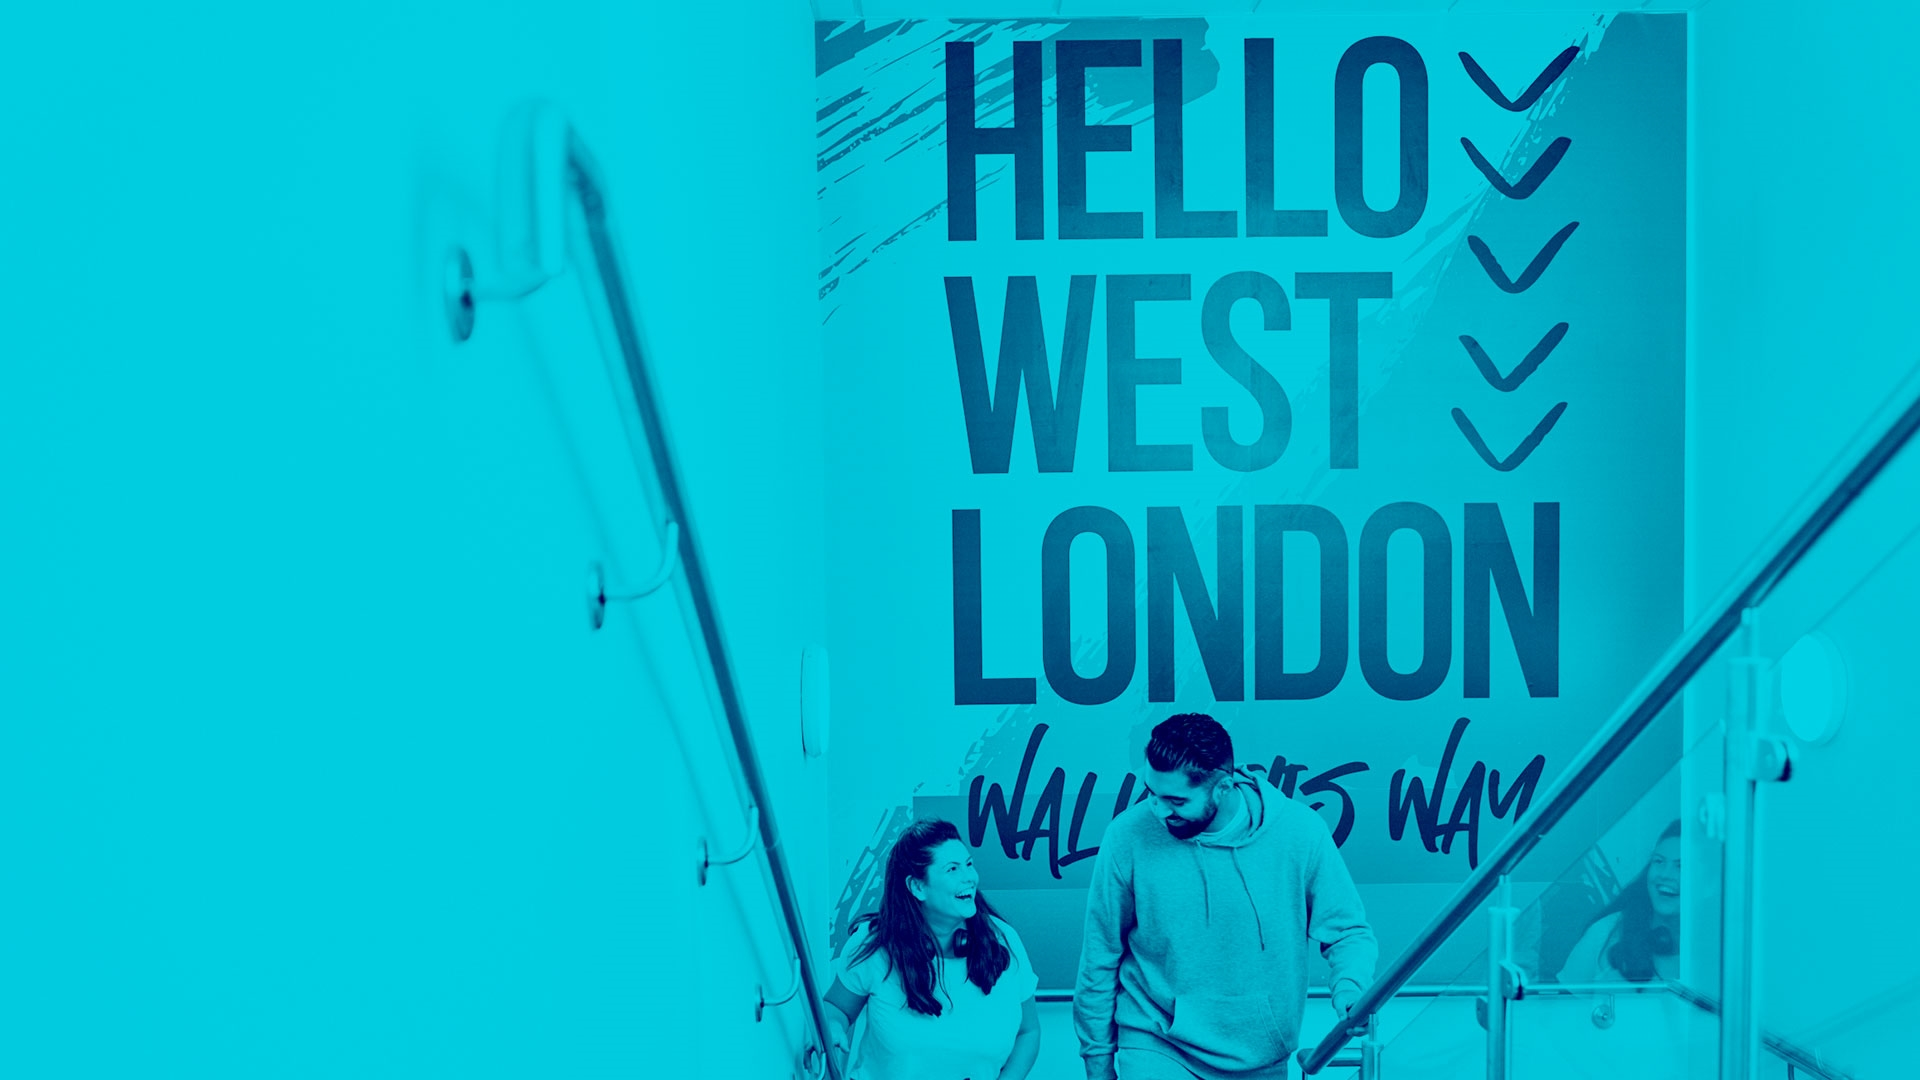 Staff walking up stairs with a 'Hello West London' backdrop